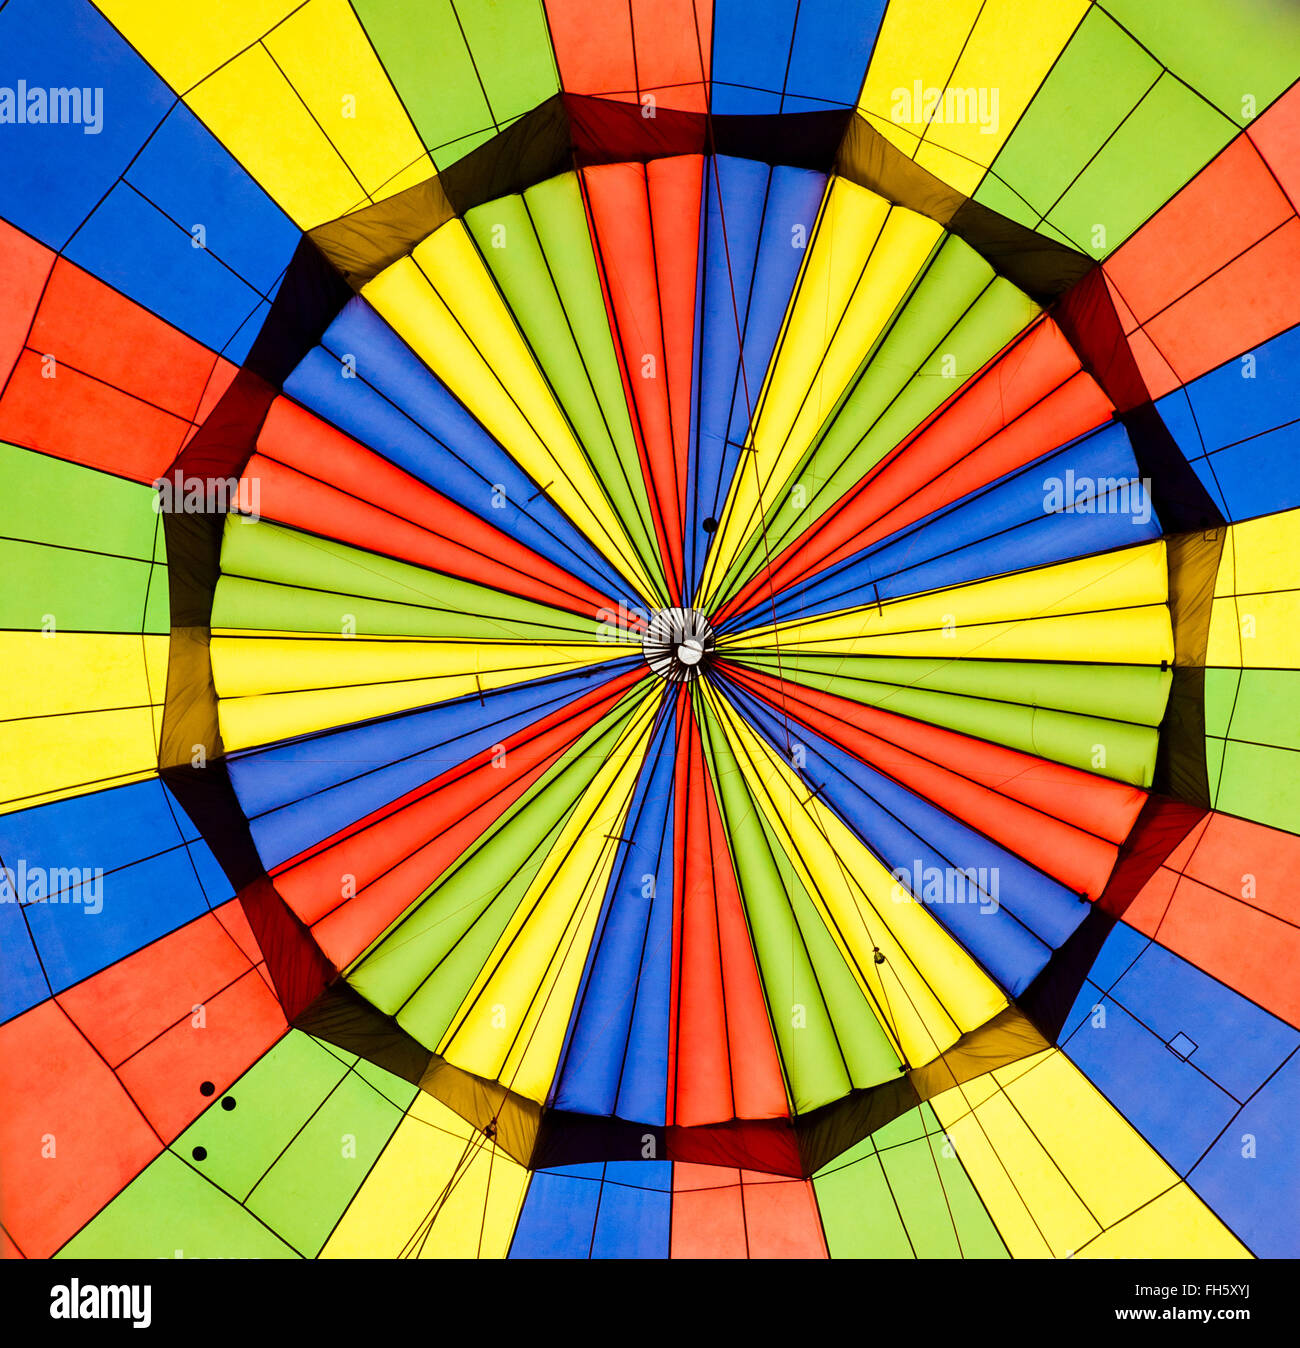 Apex of the interior of a hot air balloon in primary colours of rip stop nylon - Stock Image